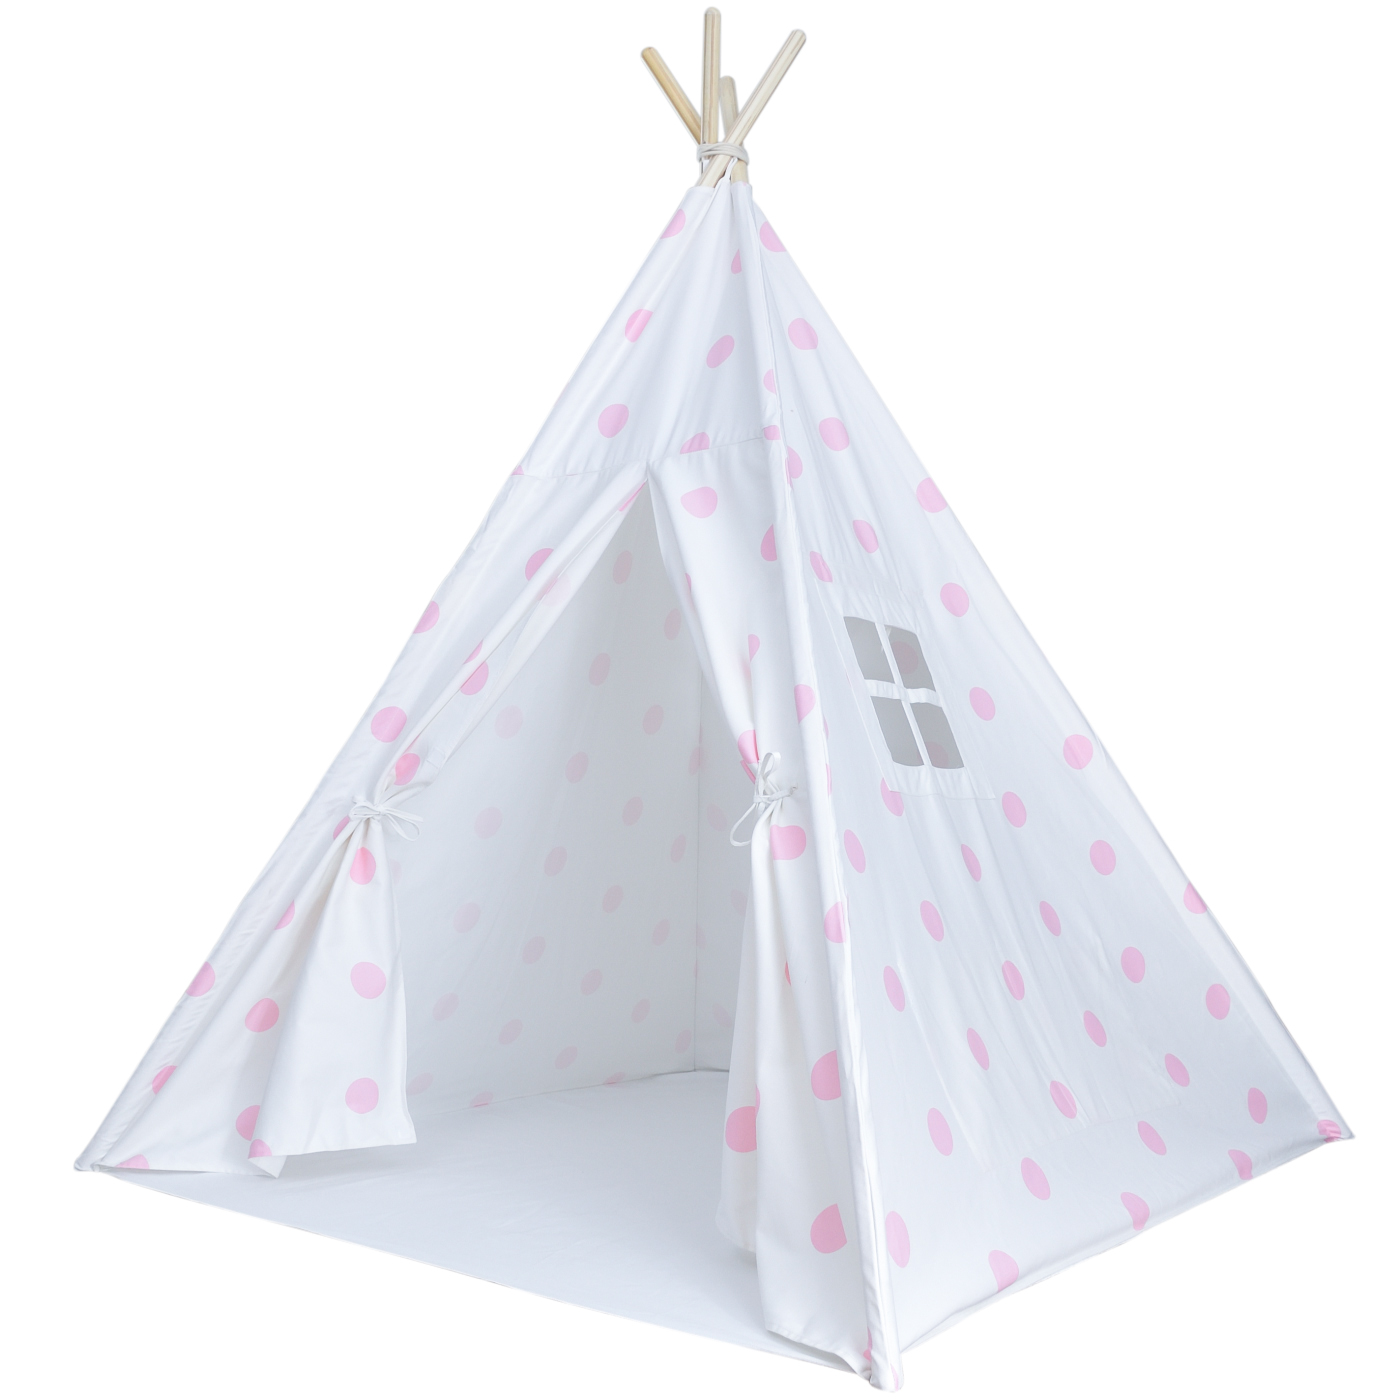 Home / Shop / Pretend Play / Polka Dot Kids Teepee Tent White with Pink Dots Includes Carrying Case  sc 1 st  A Mustard Seed Toys & Polka Dot Kids Teepee Tent White with Pink Dots Includes Carrying ...